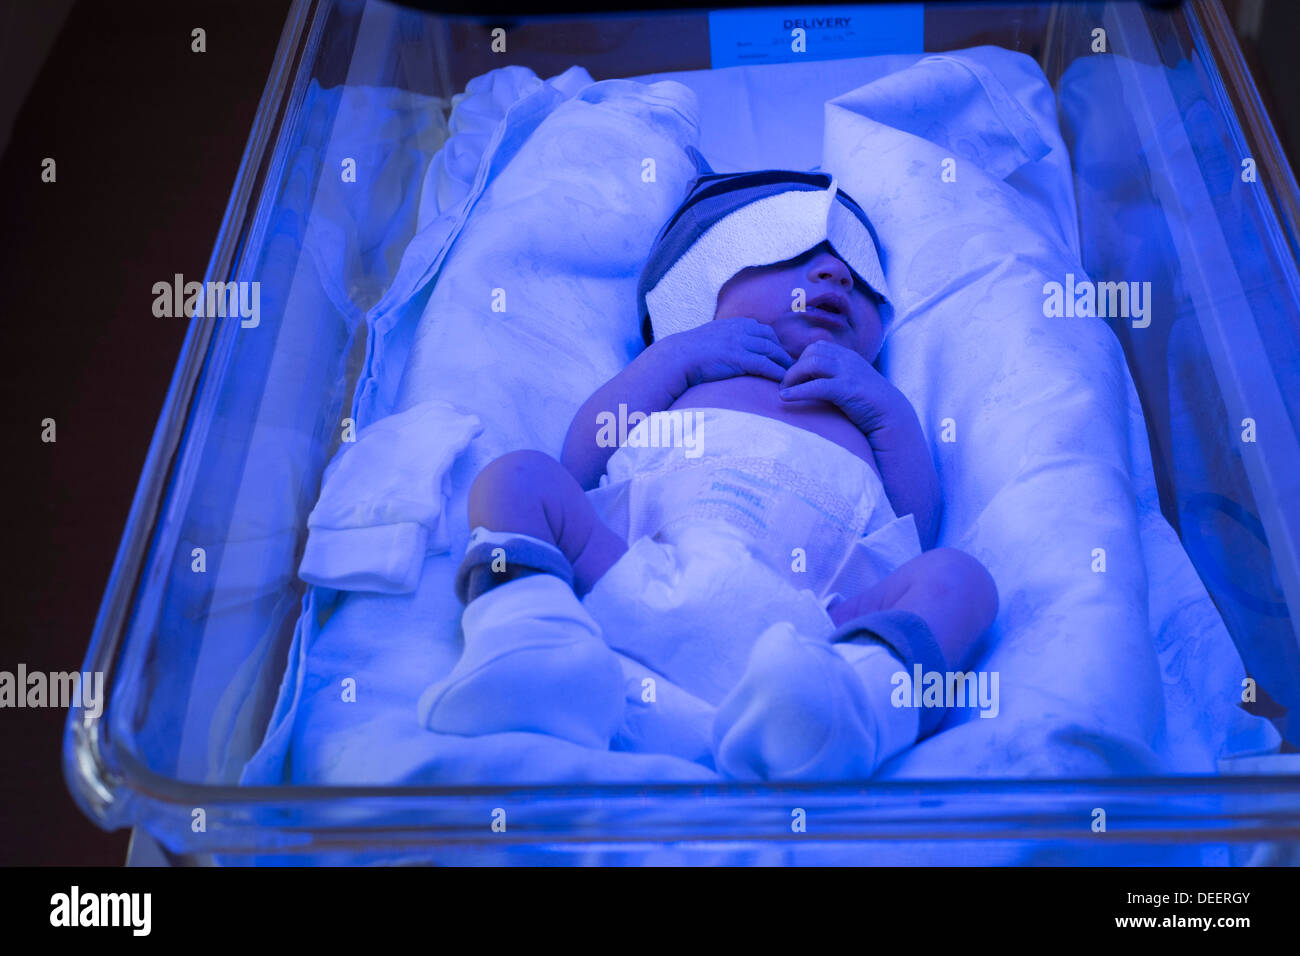 Newborn Babies Jaundice Treatment A Newborn Baby Boy Getting Treated For Jaundice Under A